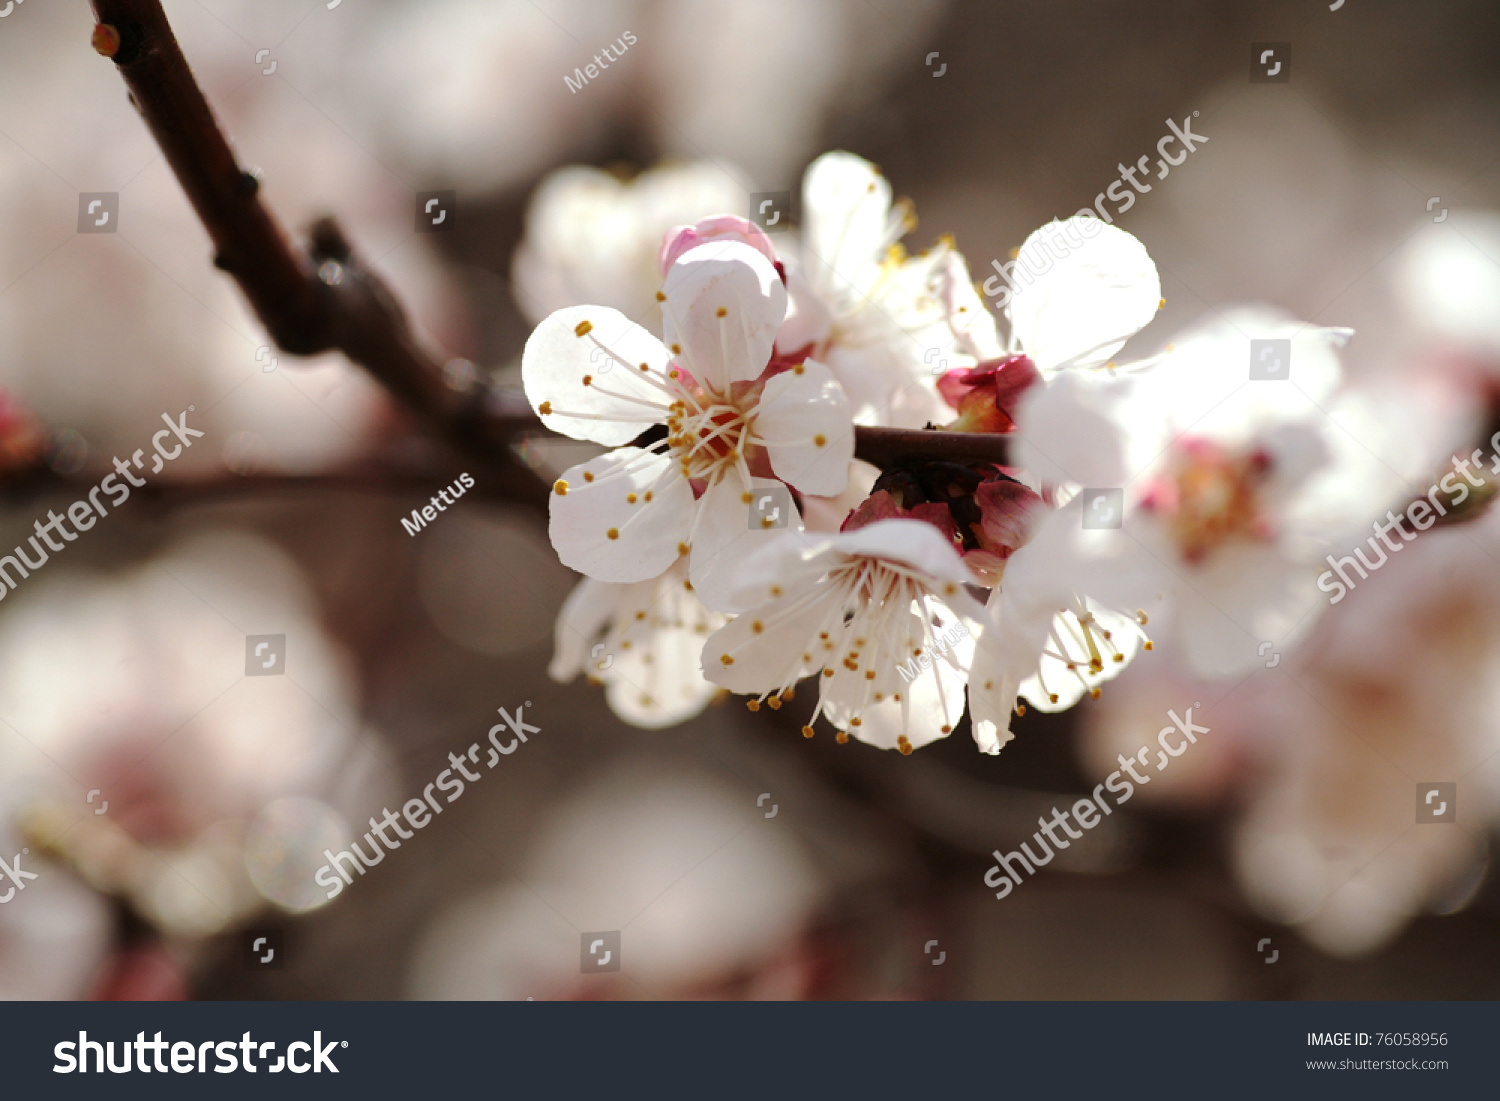 stock-photo-macro-image-of-two-cherry-fl